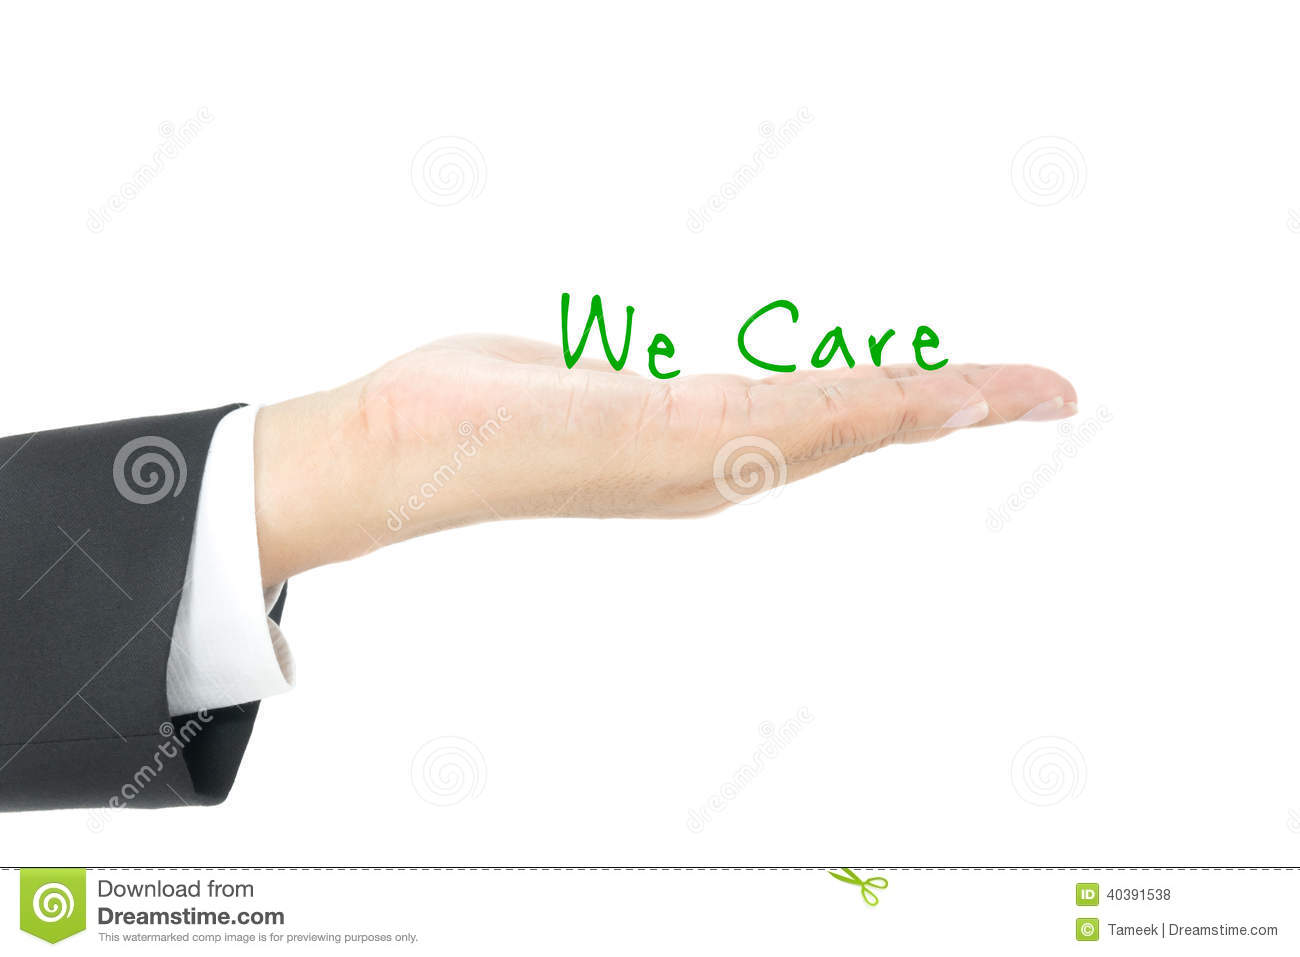 Customer care on hand with white background.